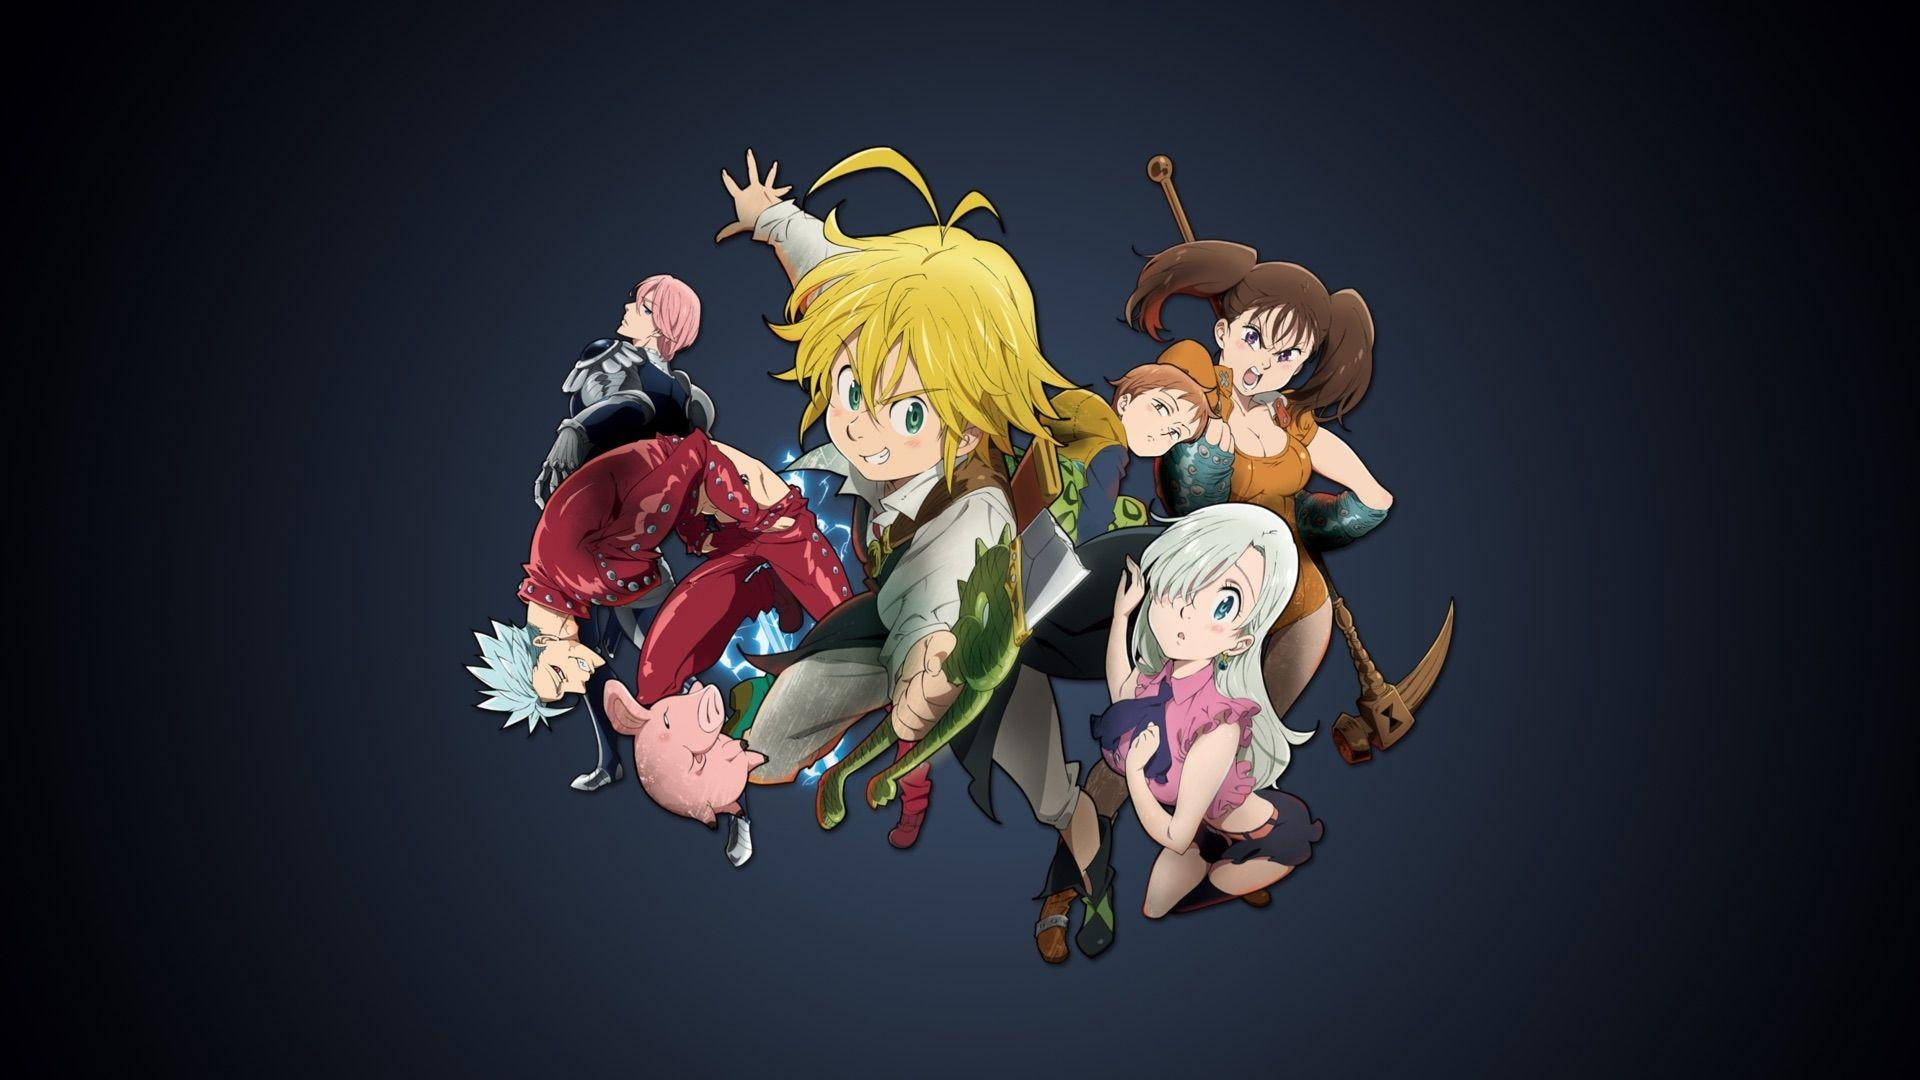 Adorable 7 Deadly Sins Wallpapers, 56619518 1920x1080